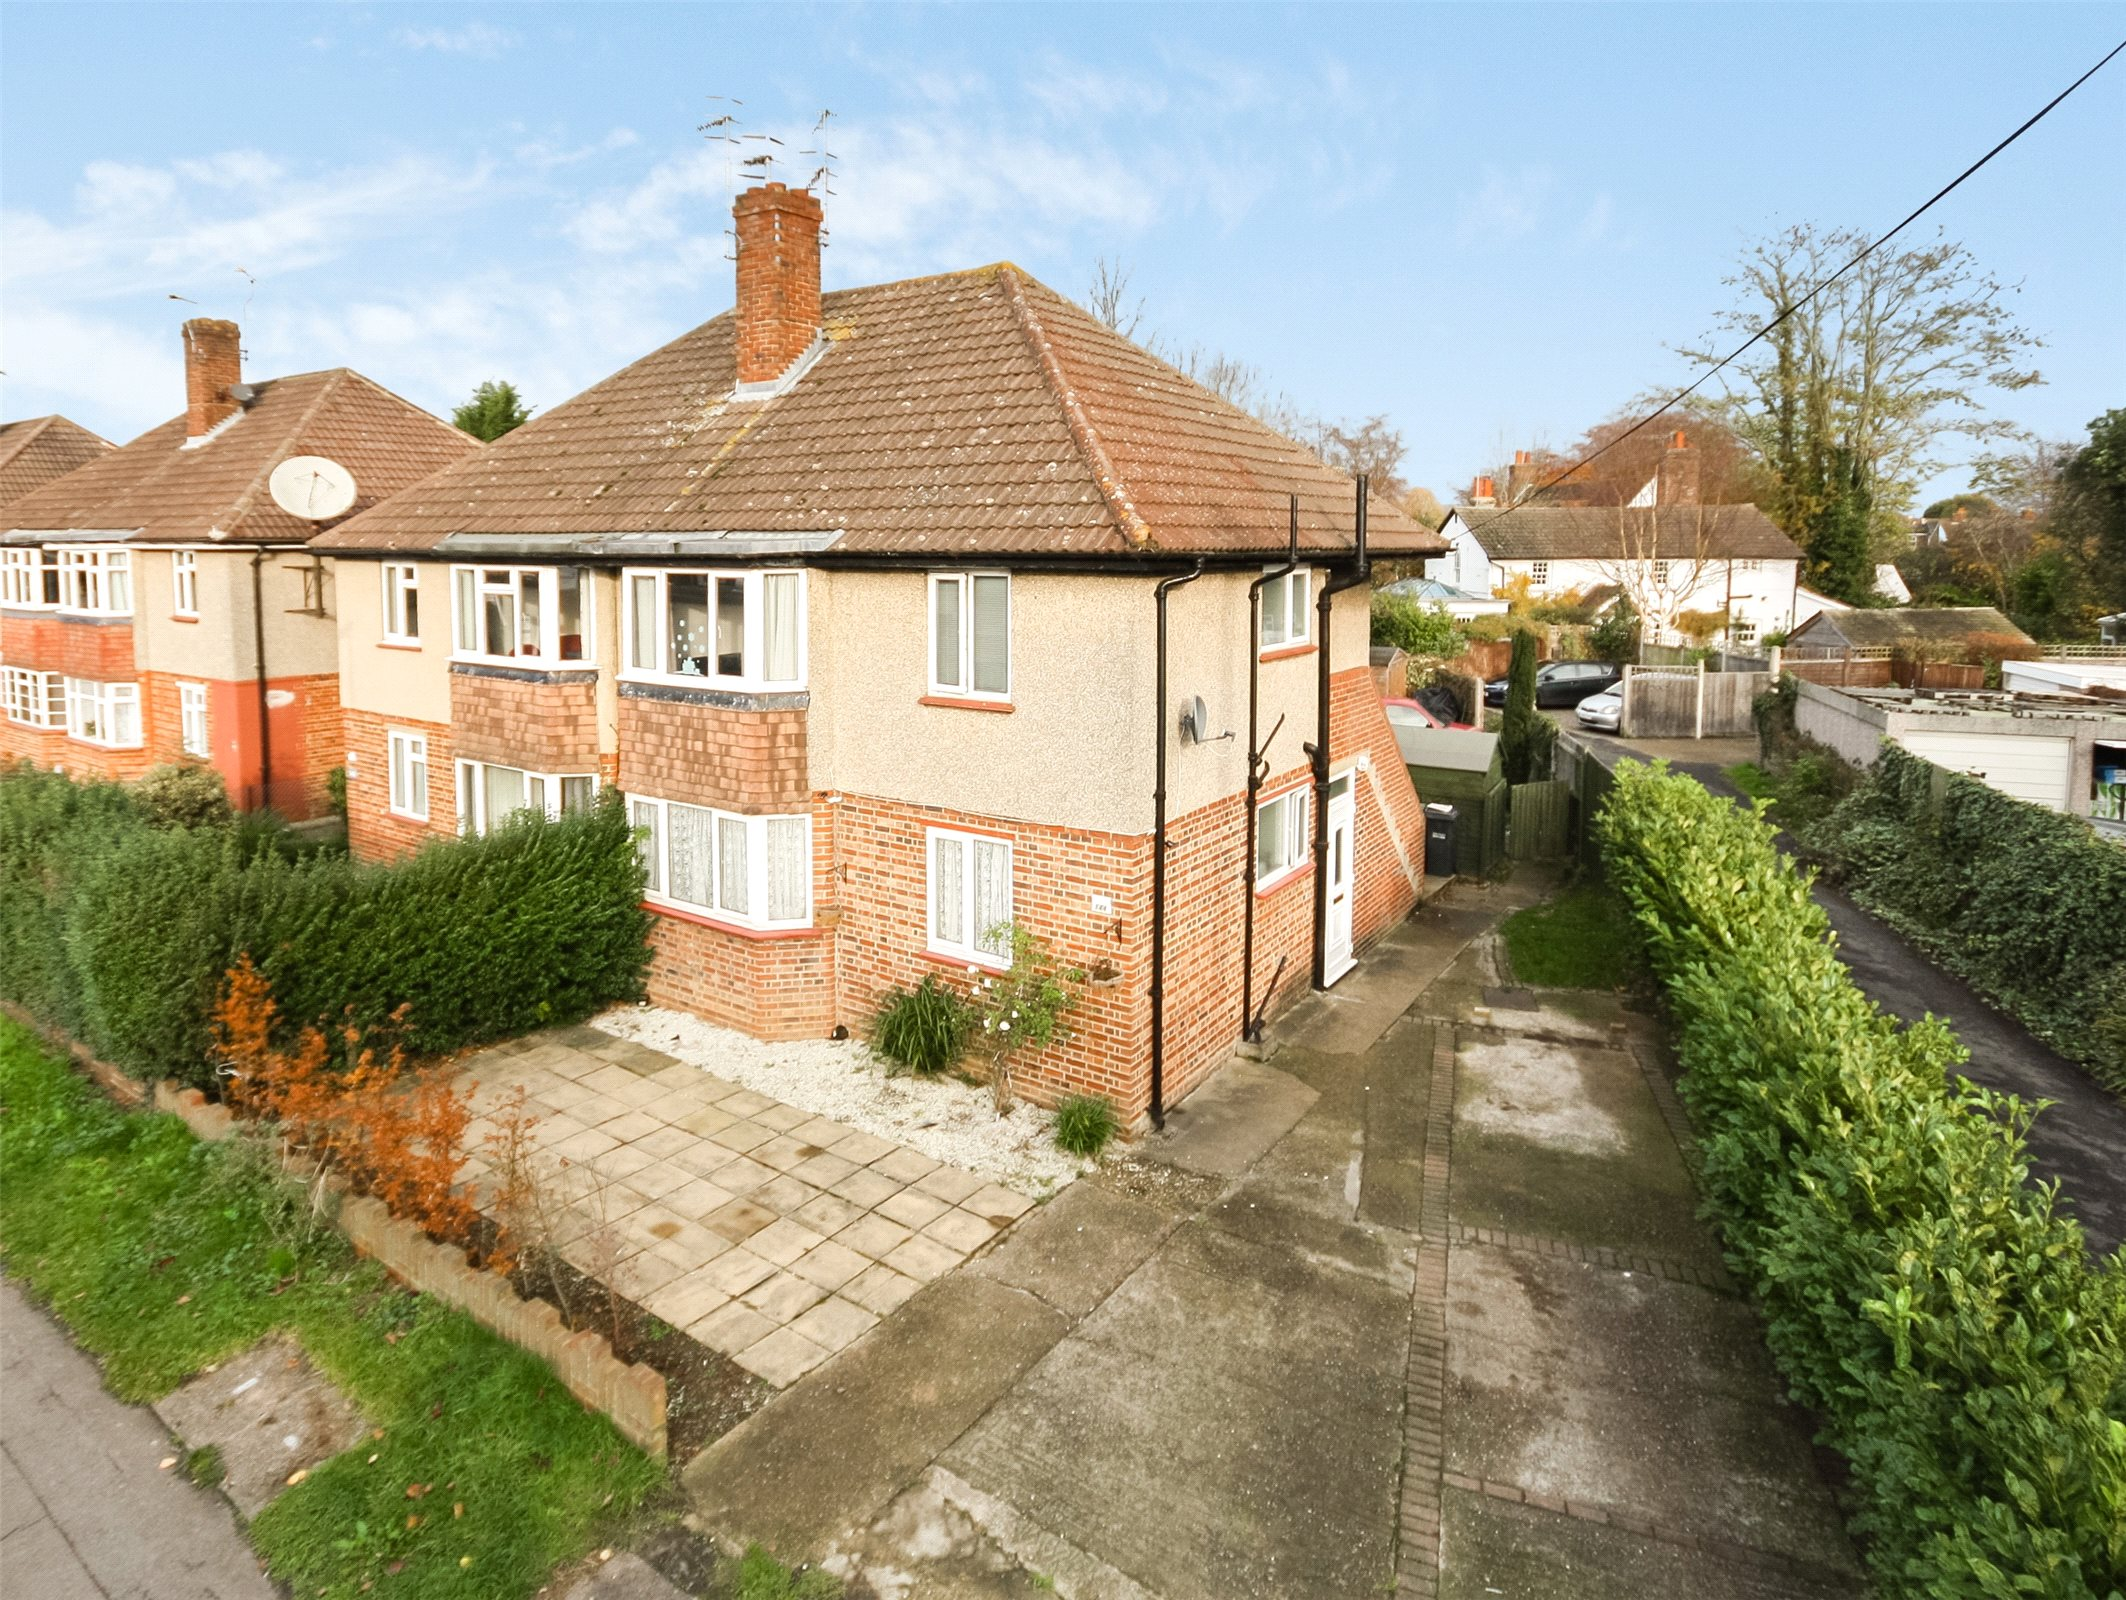 2 Bedrooms Apartment Flat for sale in Victoria Road, Horley, Surrey, RH6